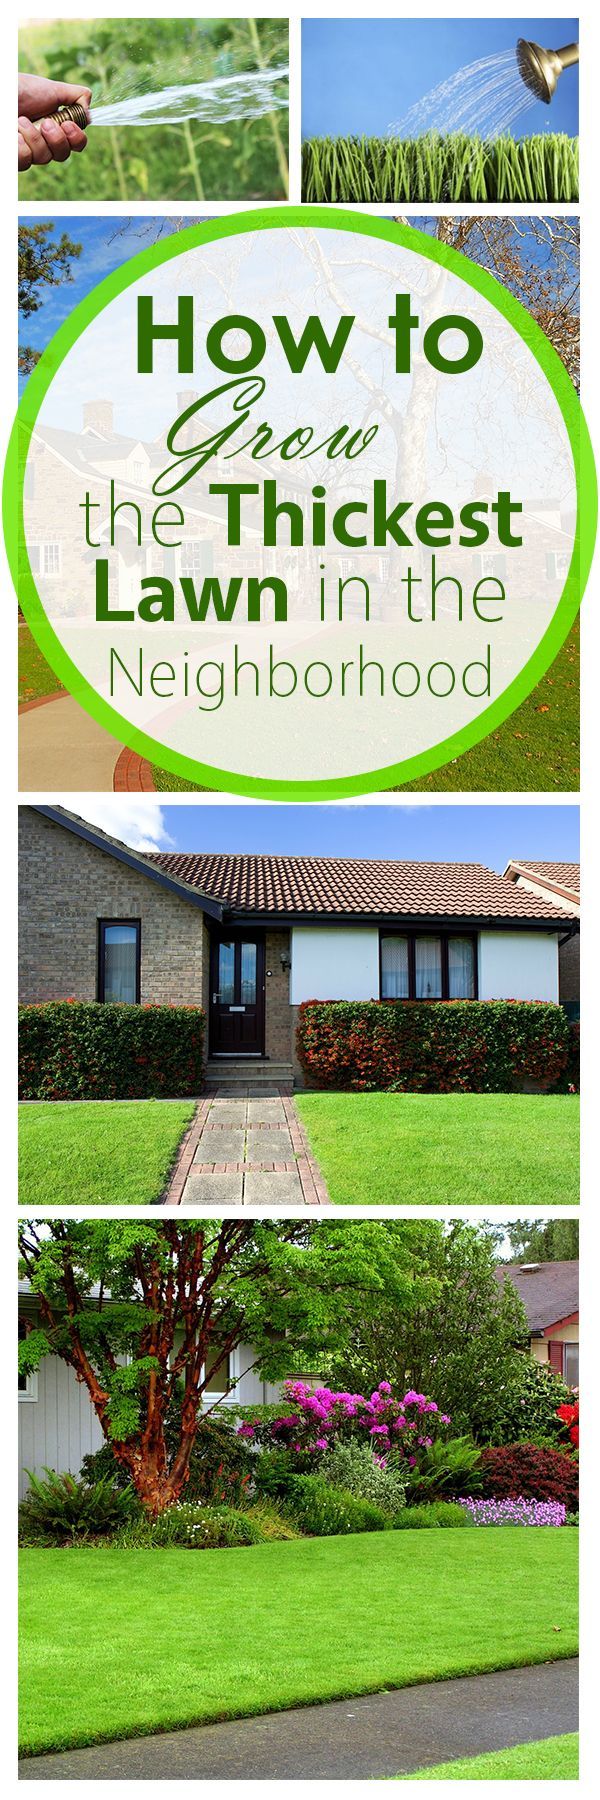 Lawn, how to get a green lawn, grass growing, how to grow grass, lawn hacks, popular pin, outdoor living, outdoor landscaping, landscaping hacks, life hacks, yard and garden.